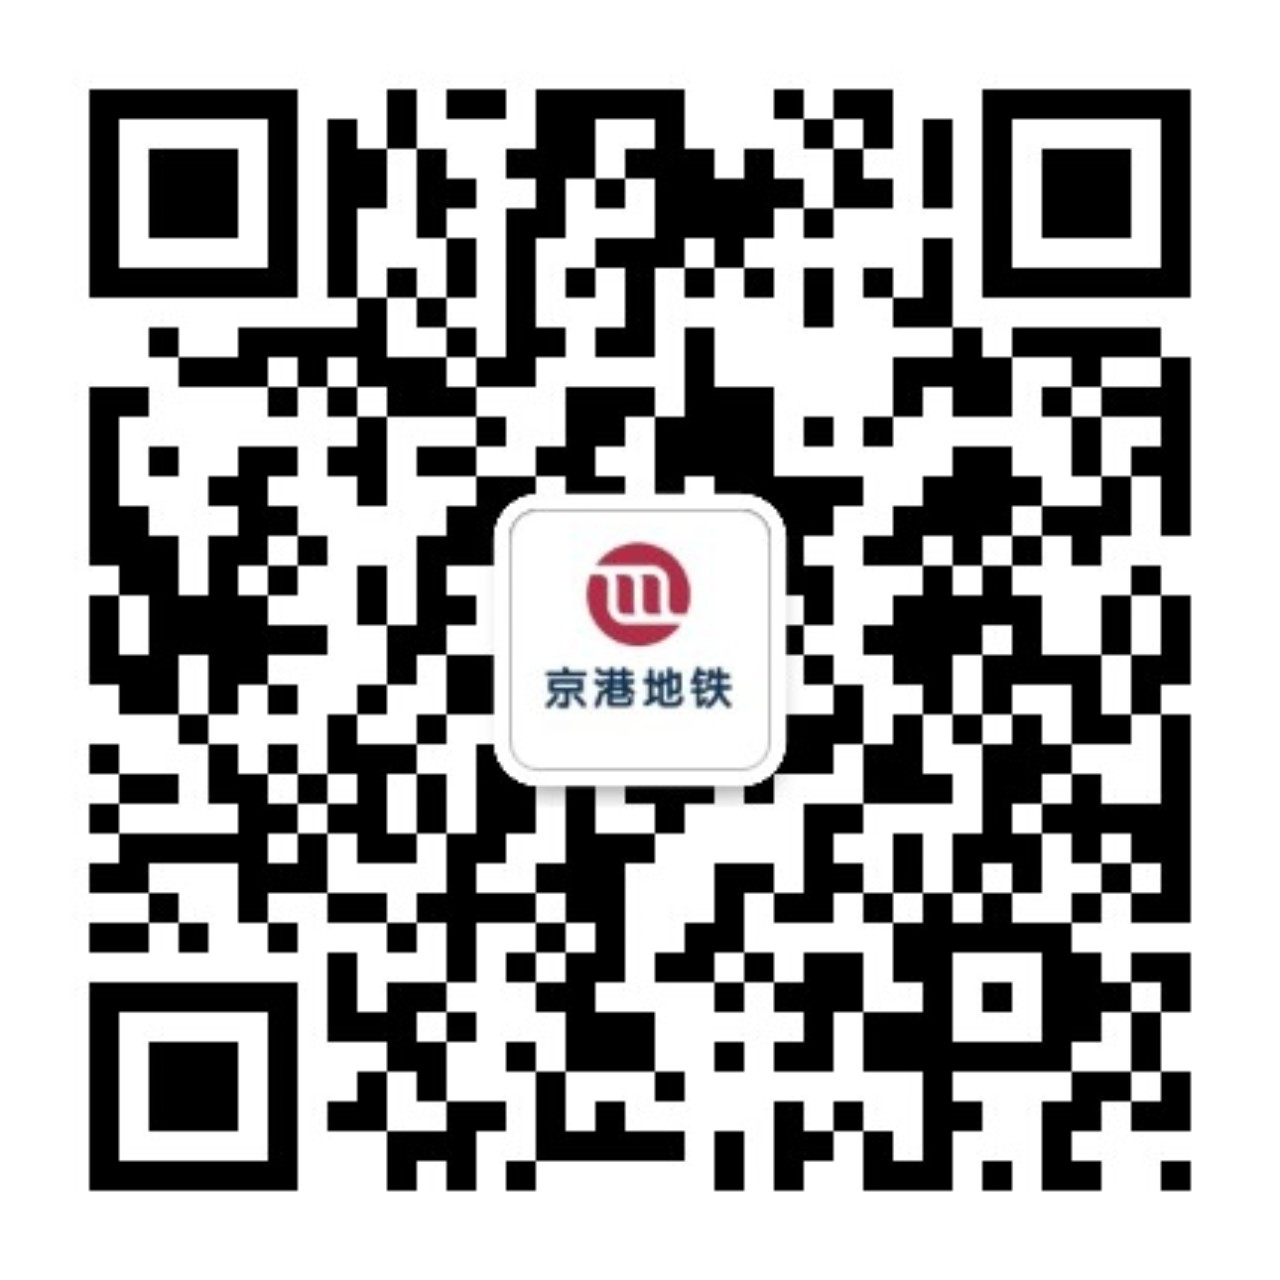 Follow Our Official Service Account on Wechat